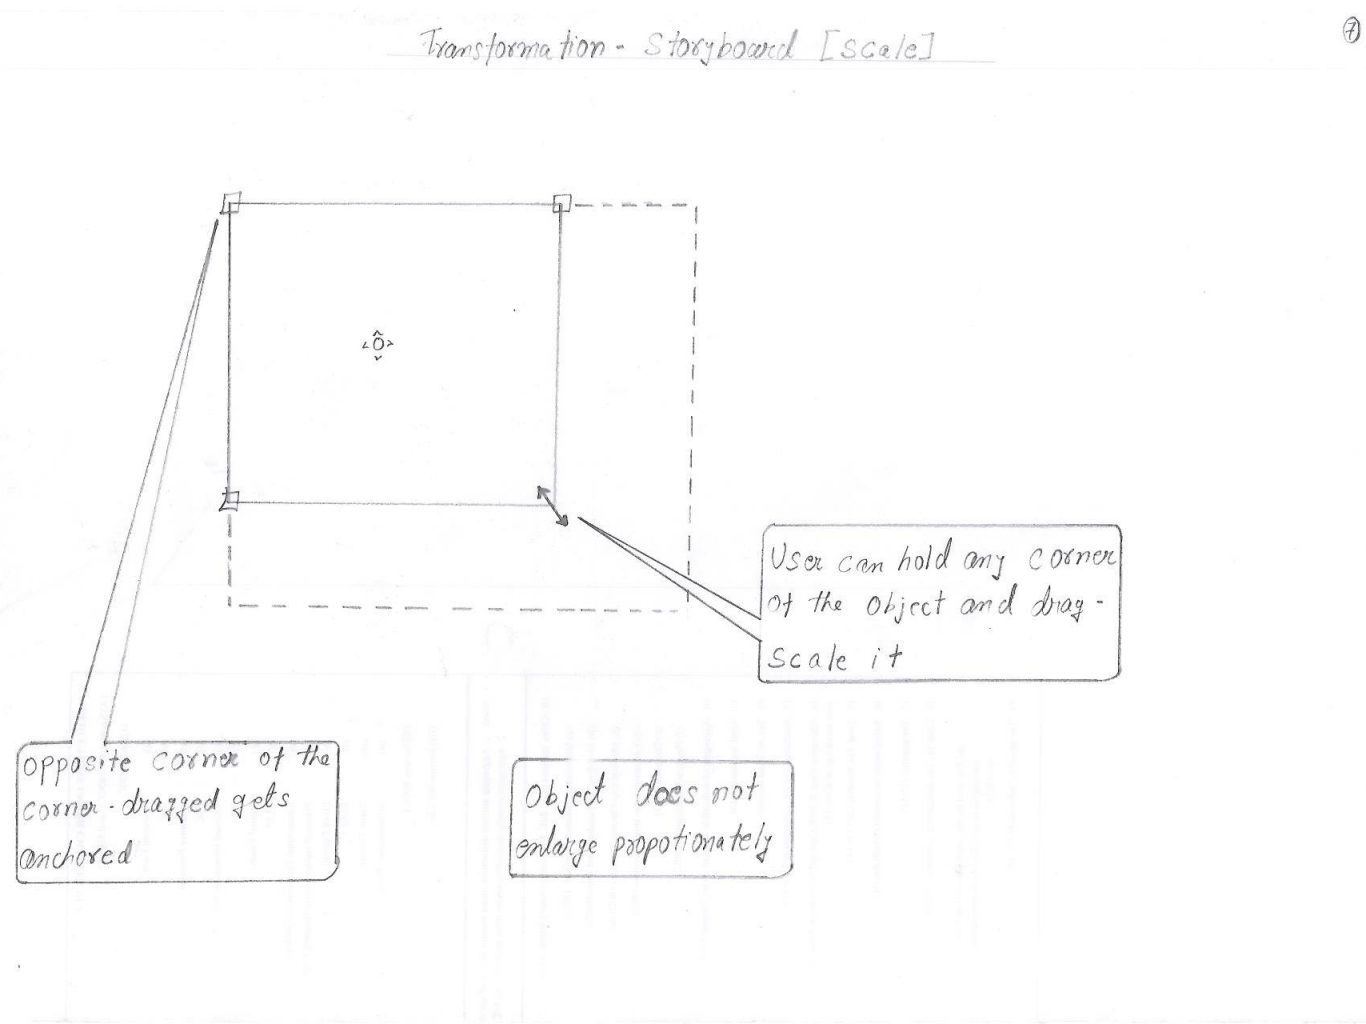 21transformation storyboard_7_of_9